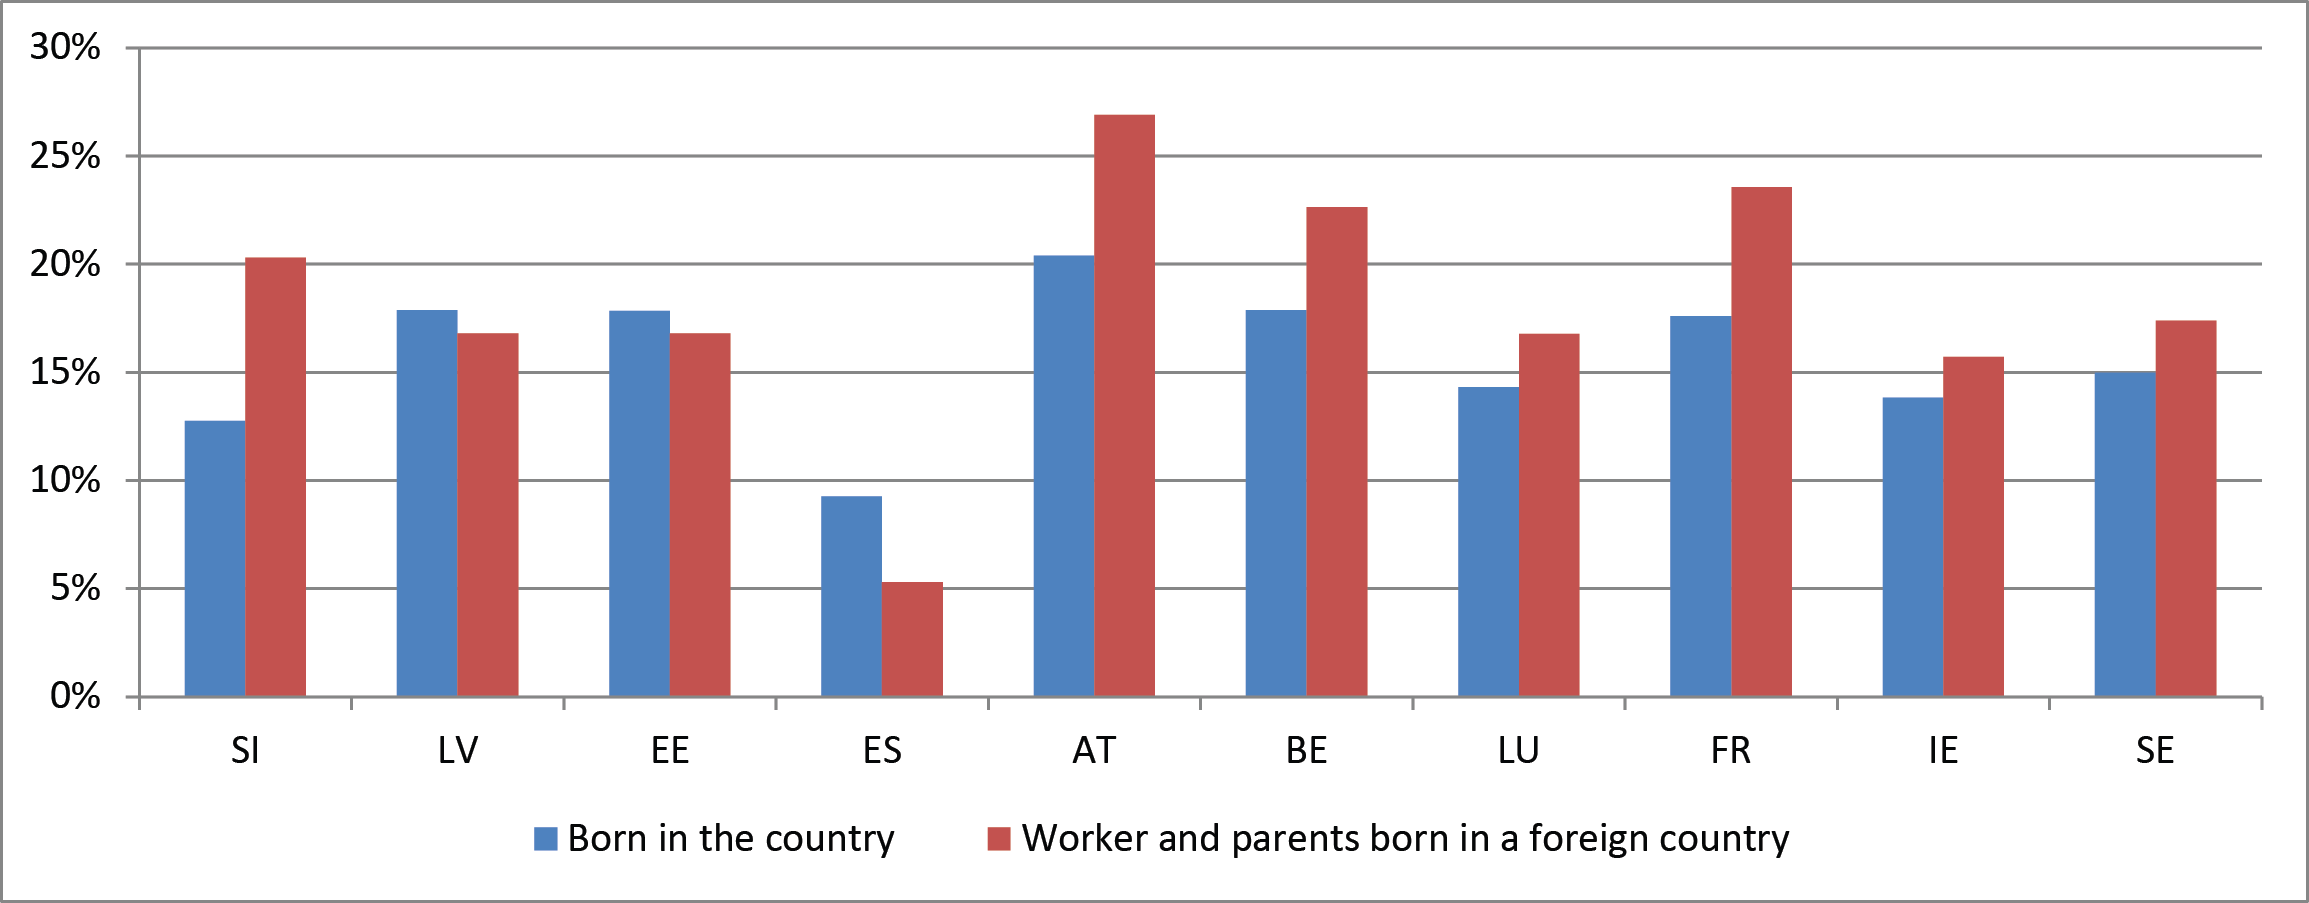 Figure 5: Proportion of workers subjected to ASB, by country of birth for selected countries (%)